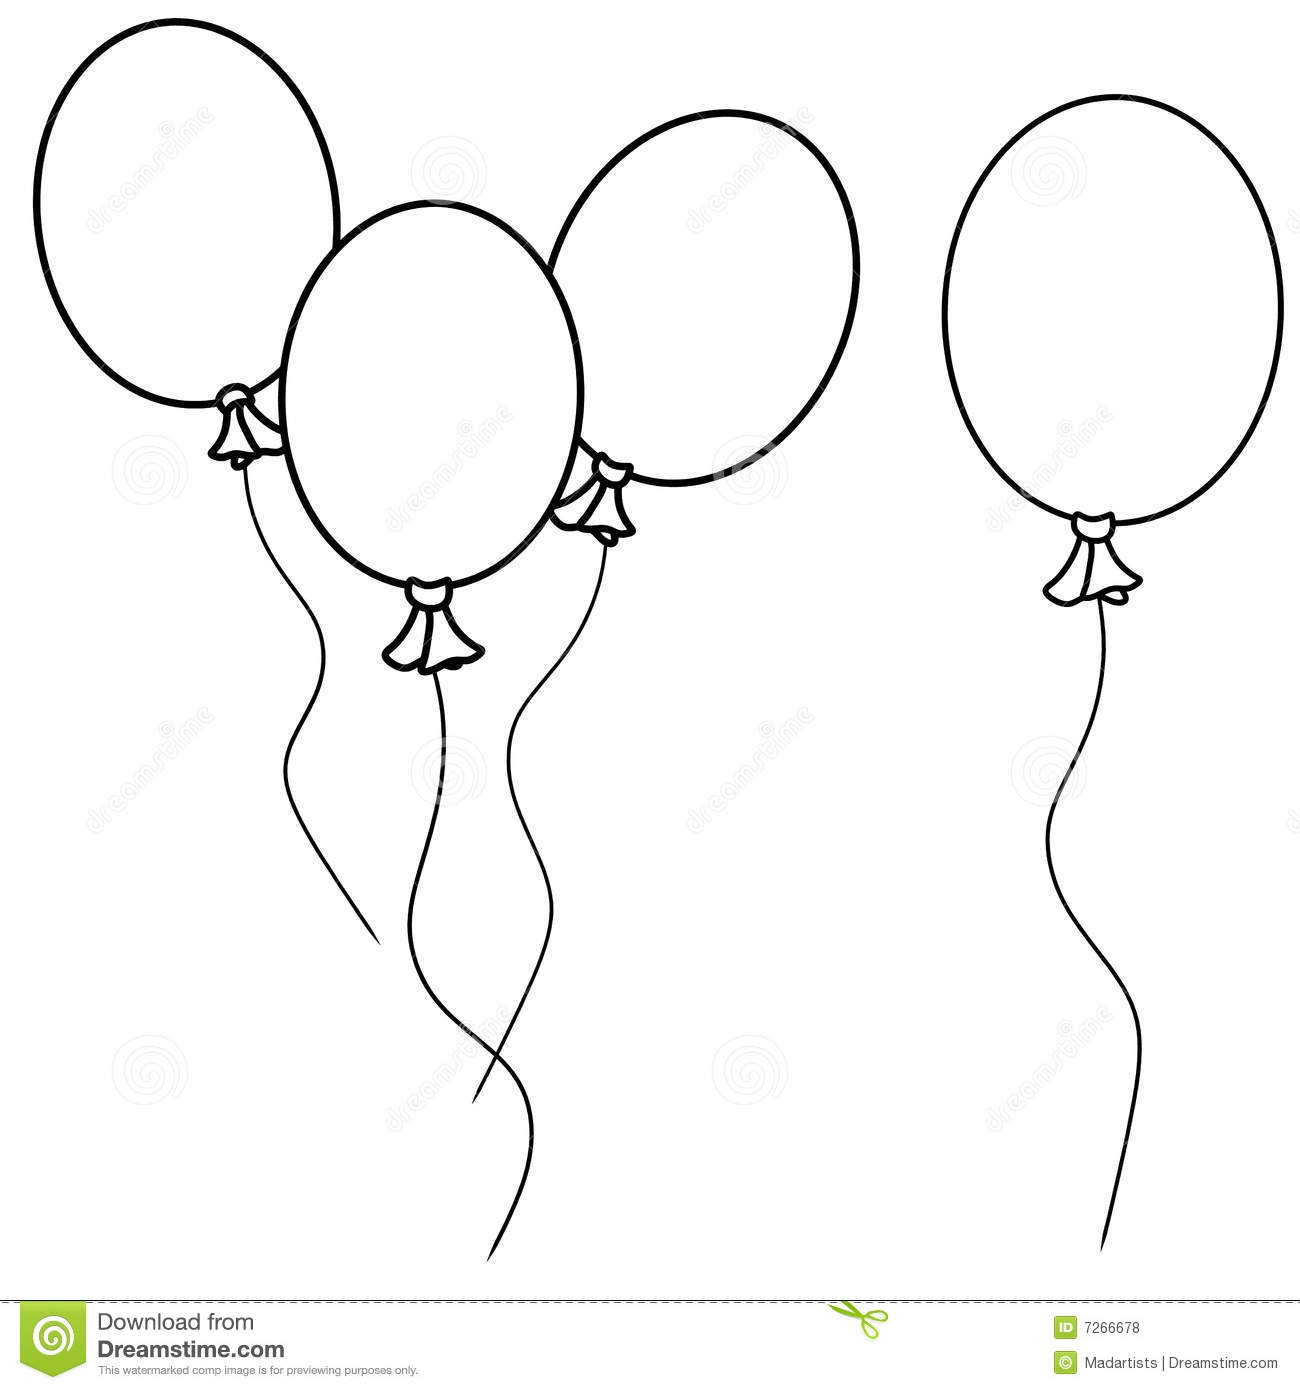 Jpg To Line Drawing : Simple balloons line art stock illustration